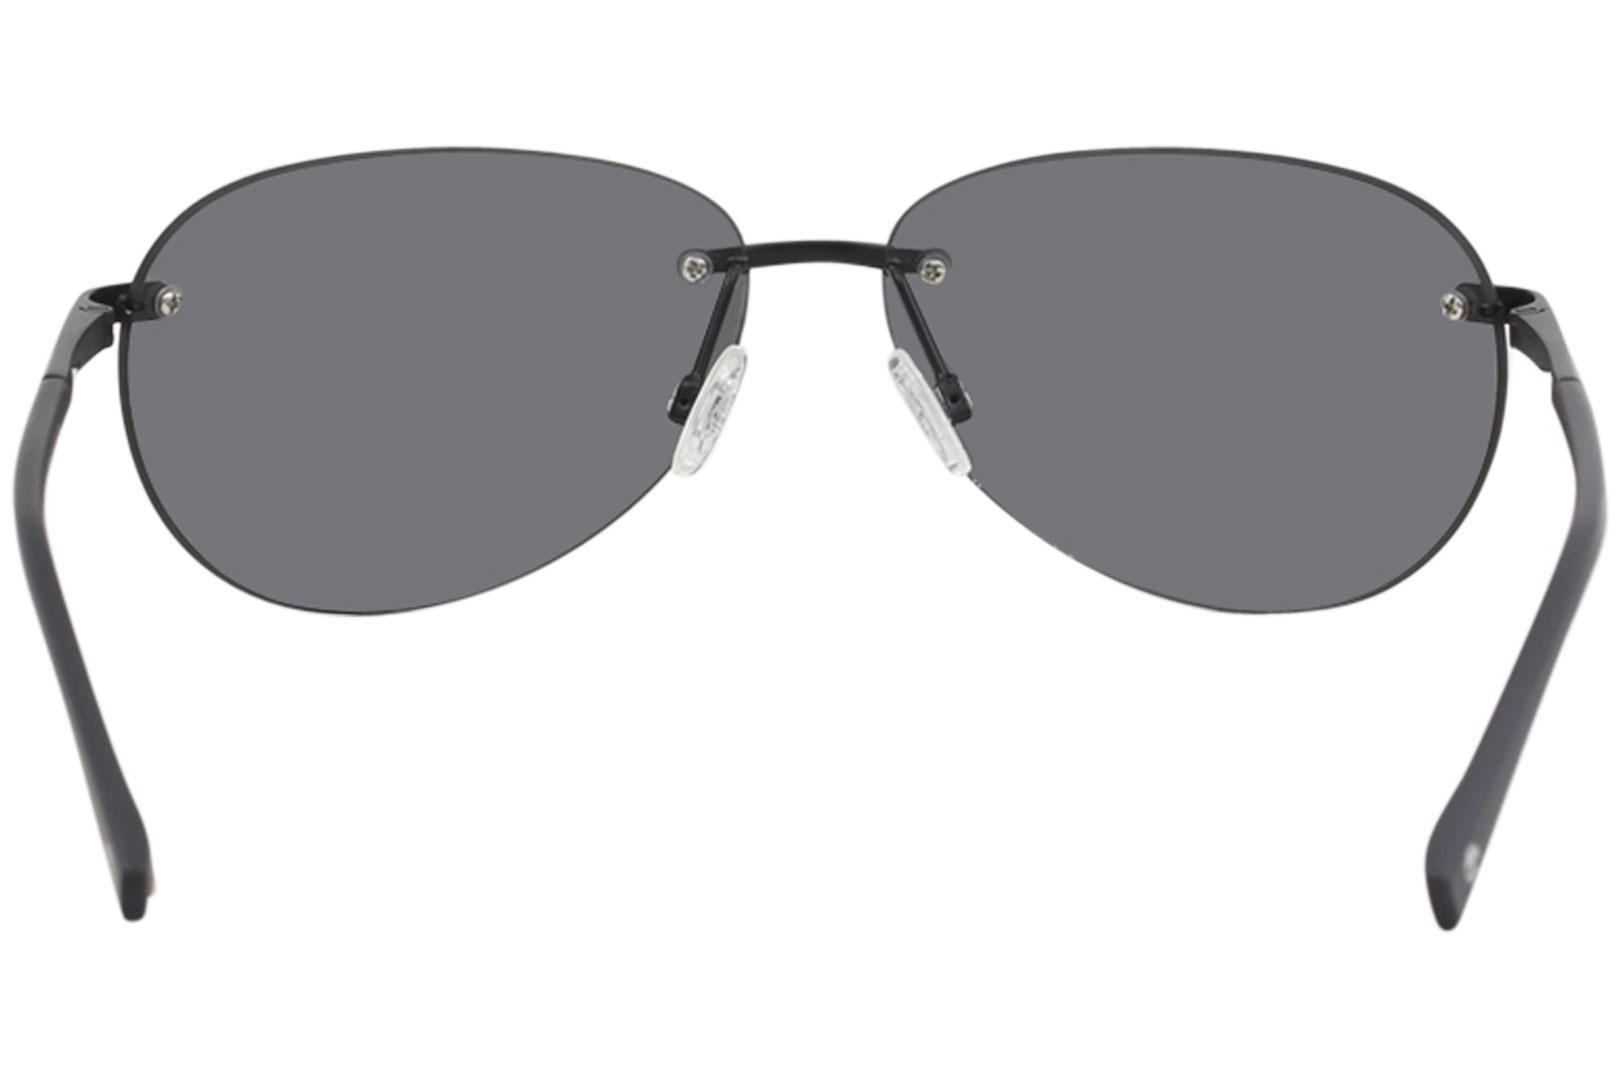 a53146e668 Timberland Men s TB9117 TB 9117 Fashion Rectangle Polarized Sunglasses by  Timberland. Hover to zoom